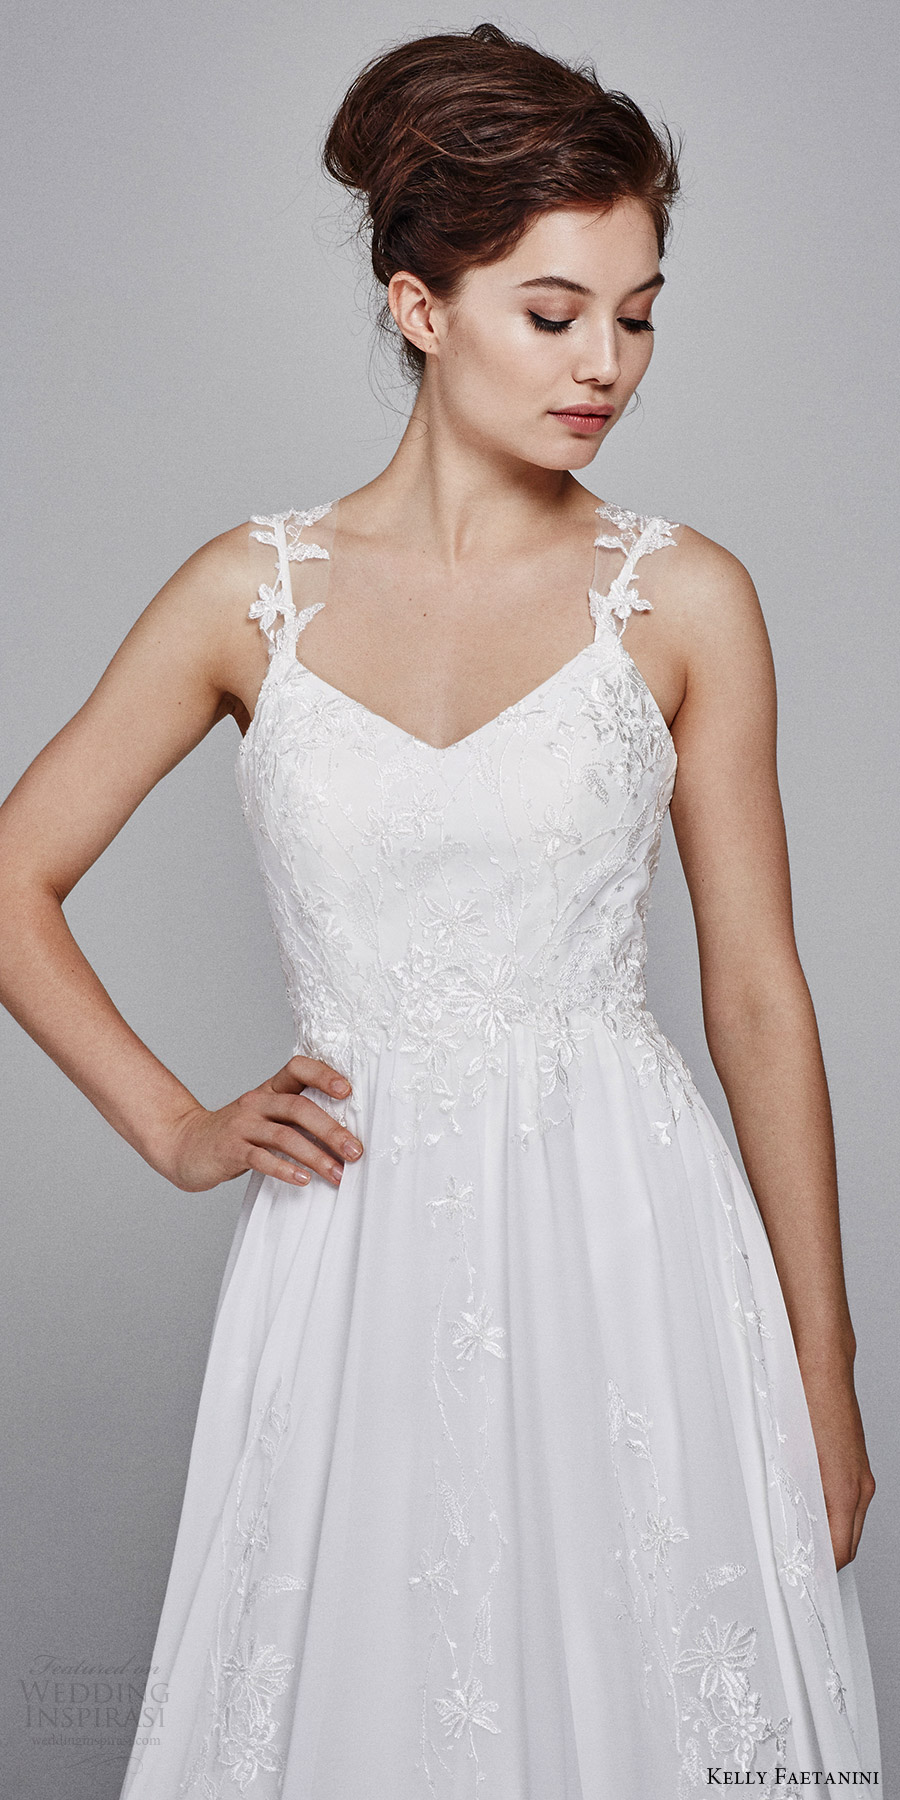 kelly faetanini bridal fall 2017 sleeveless illusion straps vneck aline wedding dress (poppy) zfv